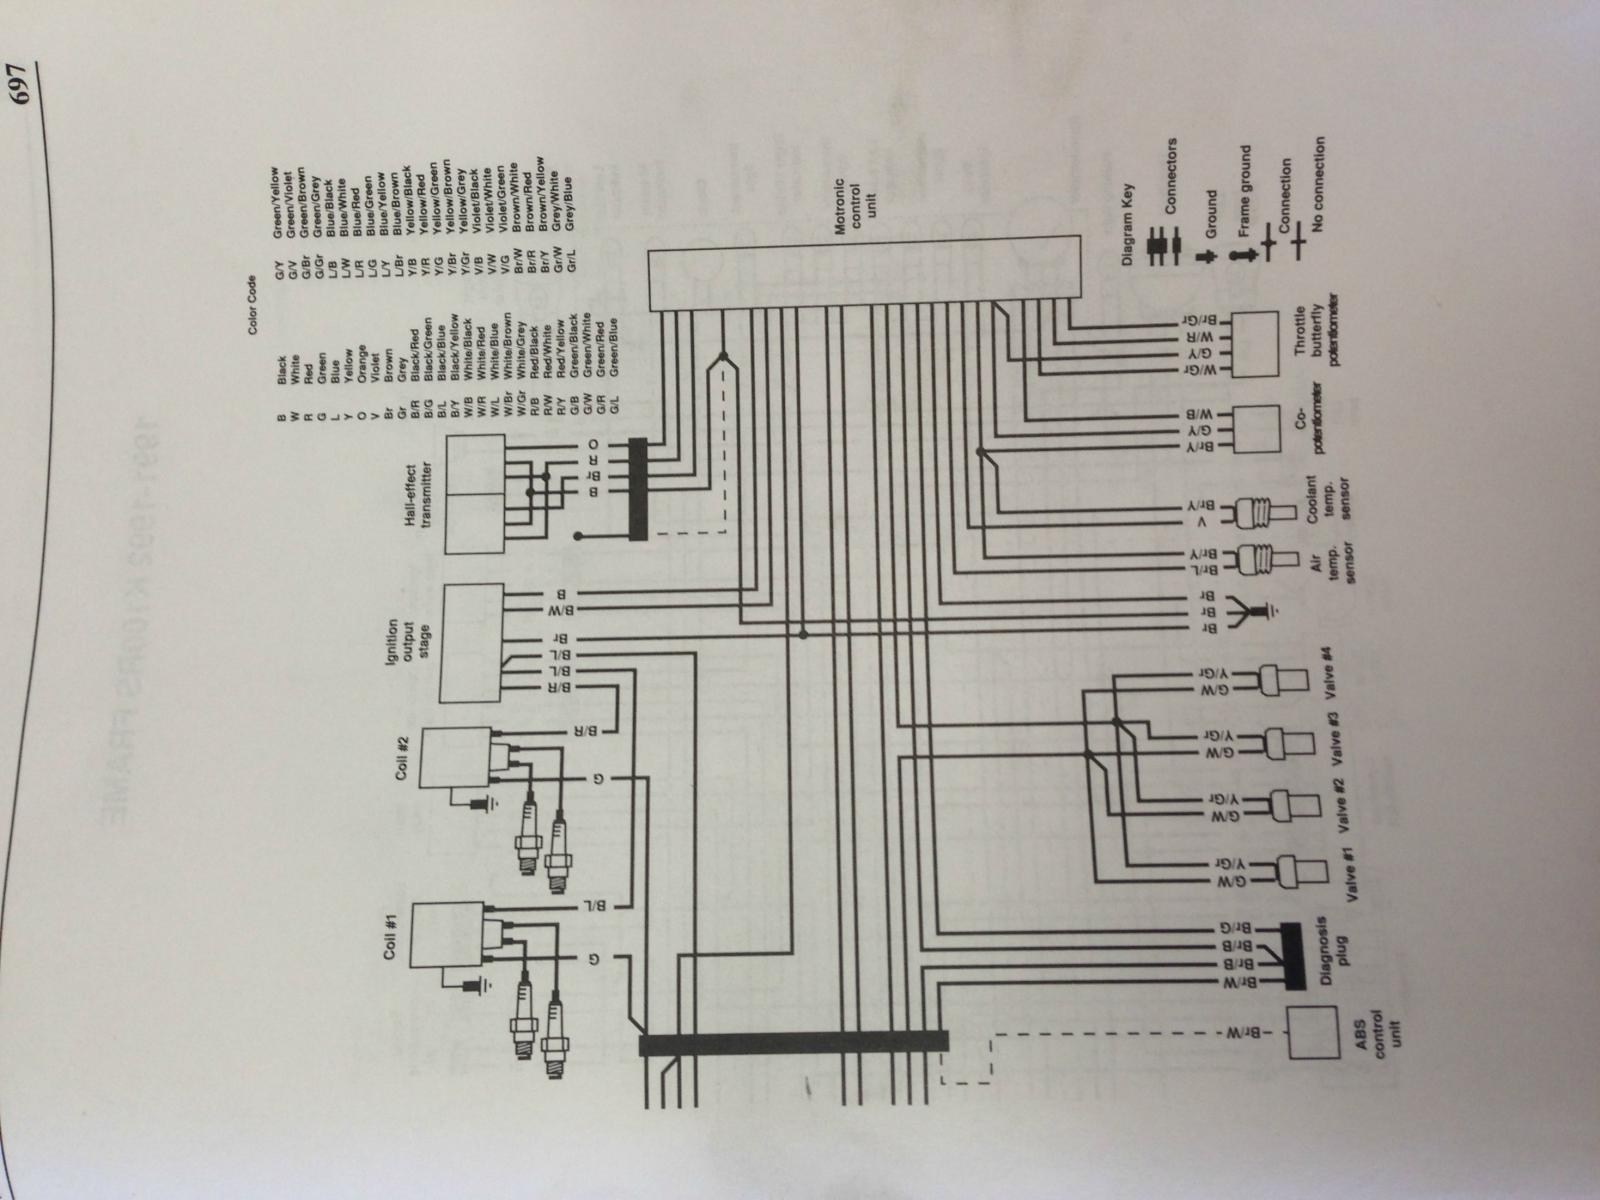 Kz1300 Wiring Diagram Libraries Zx1200 1982 Kawasaki Diagrams Library800 1024 1280 1600 Origin Z1300